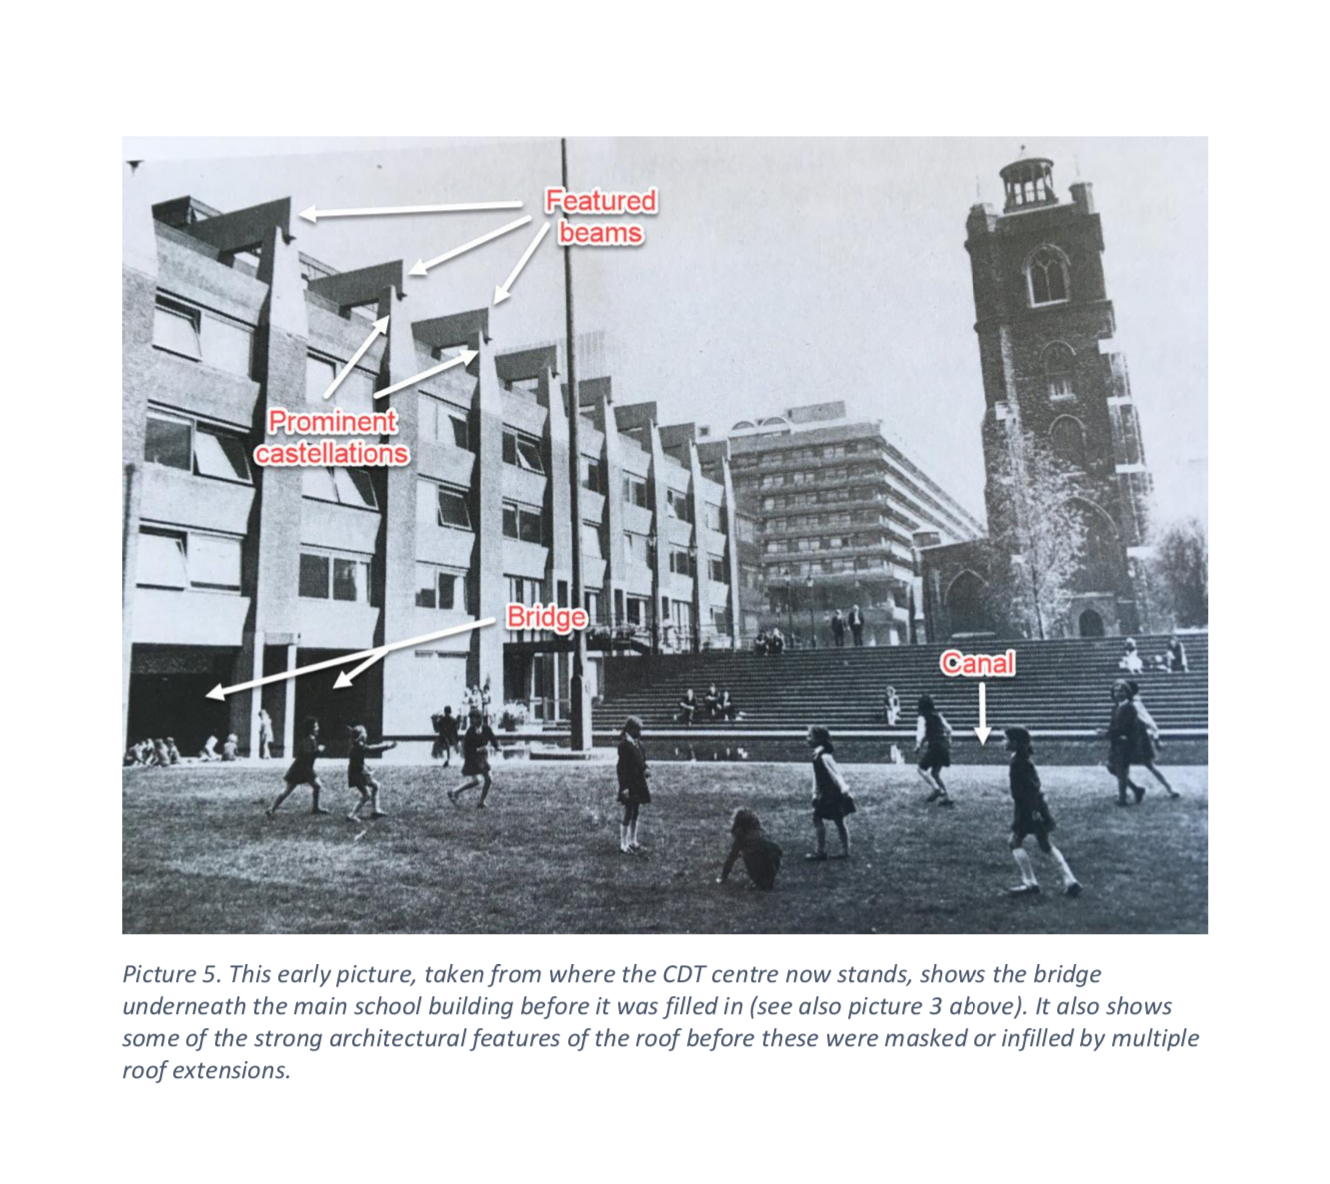 Click on the image above to read a history of the school's prior expansions